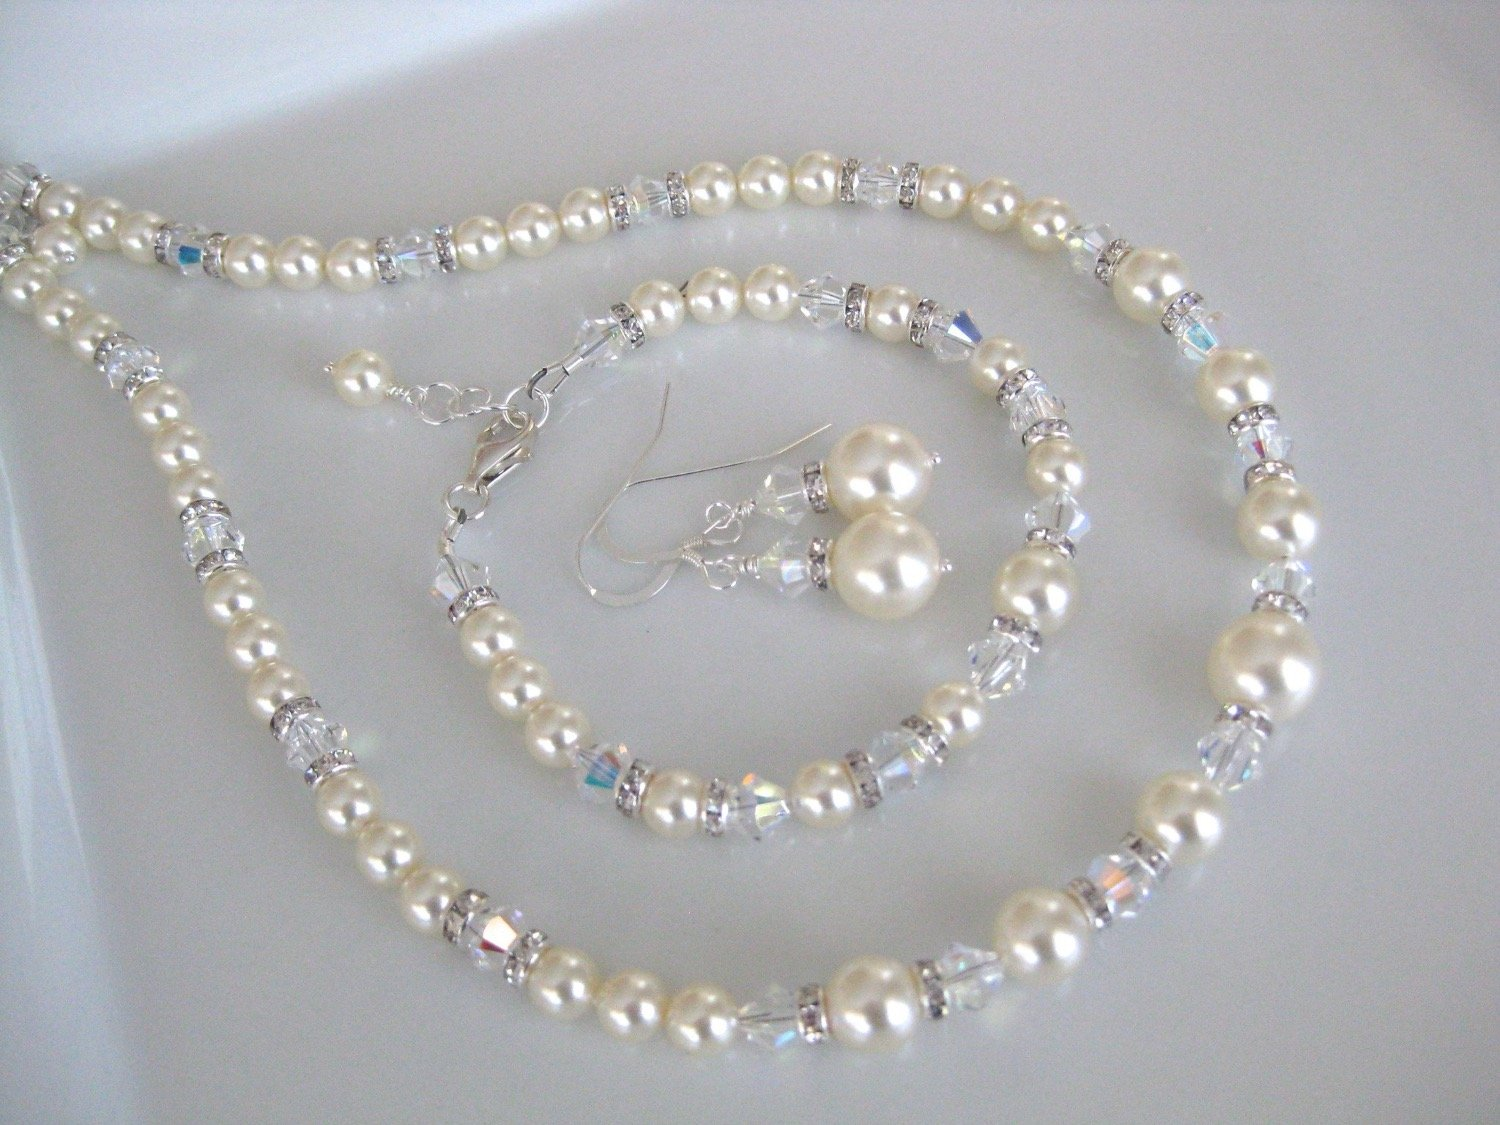 Pearl Jewelry Set Bridal Necklace, Bracelet and Earrings - Clairesbridal - 5